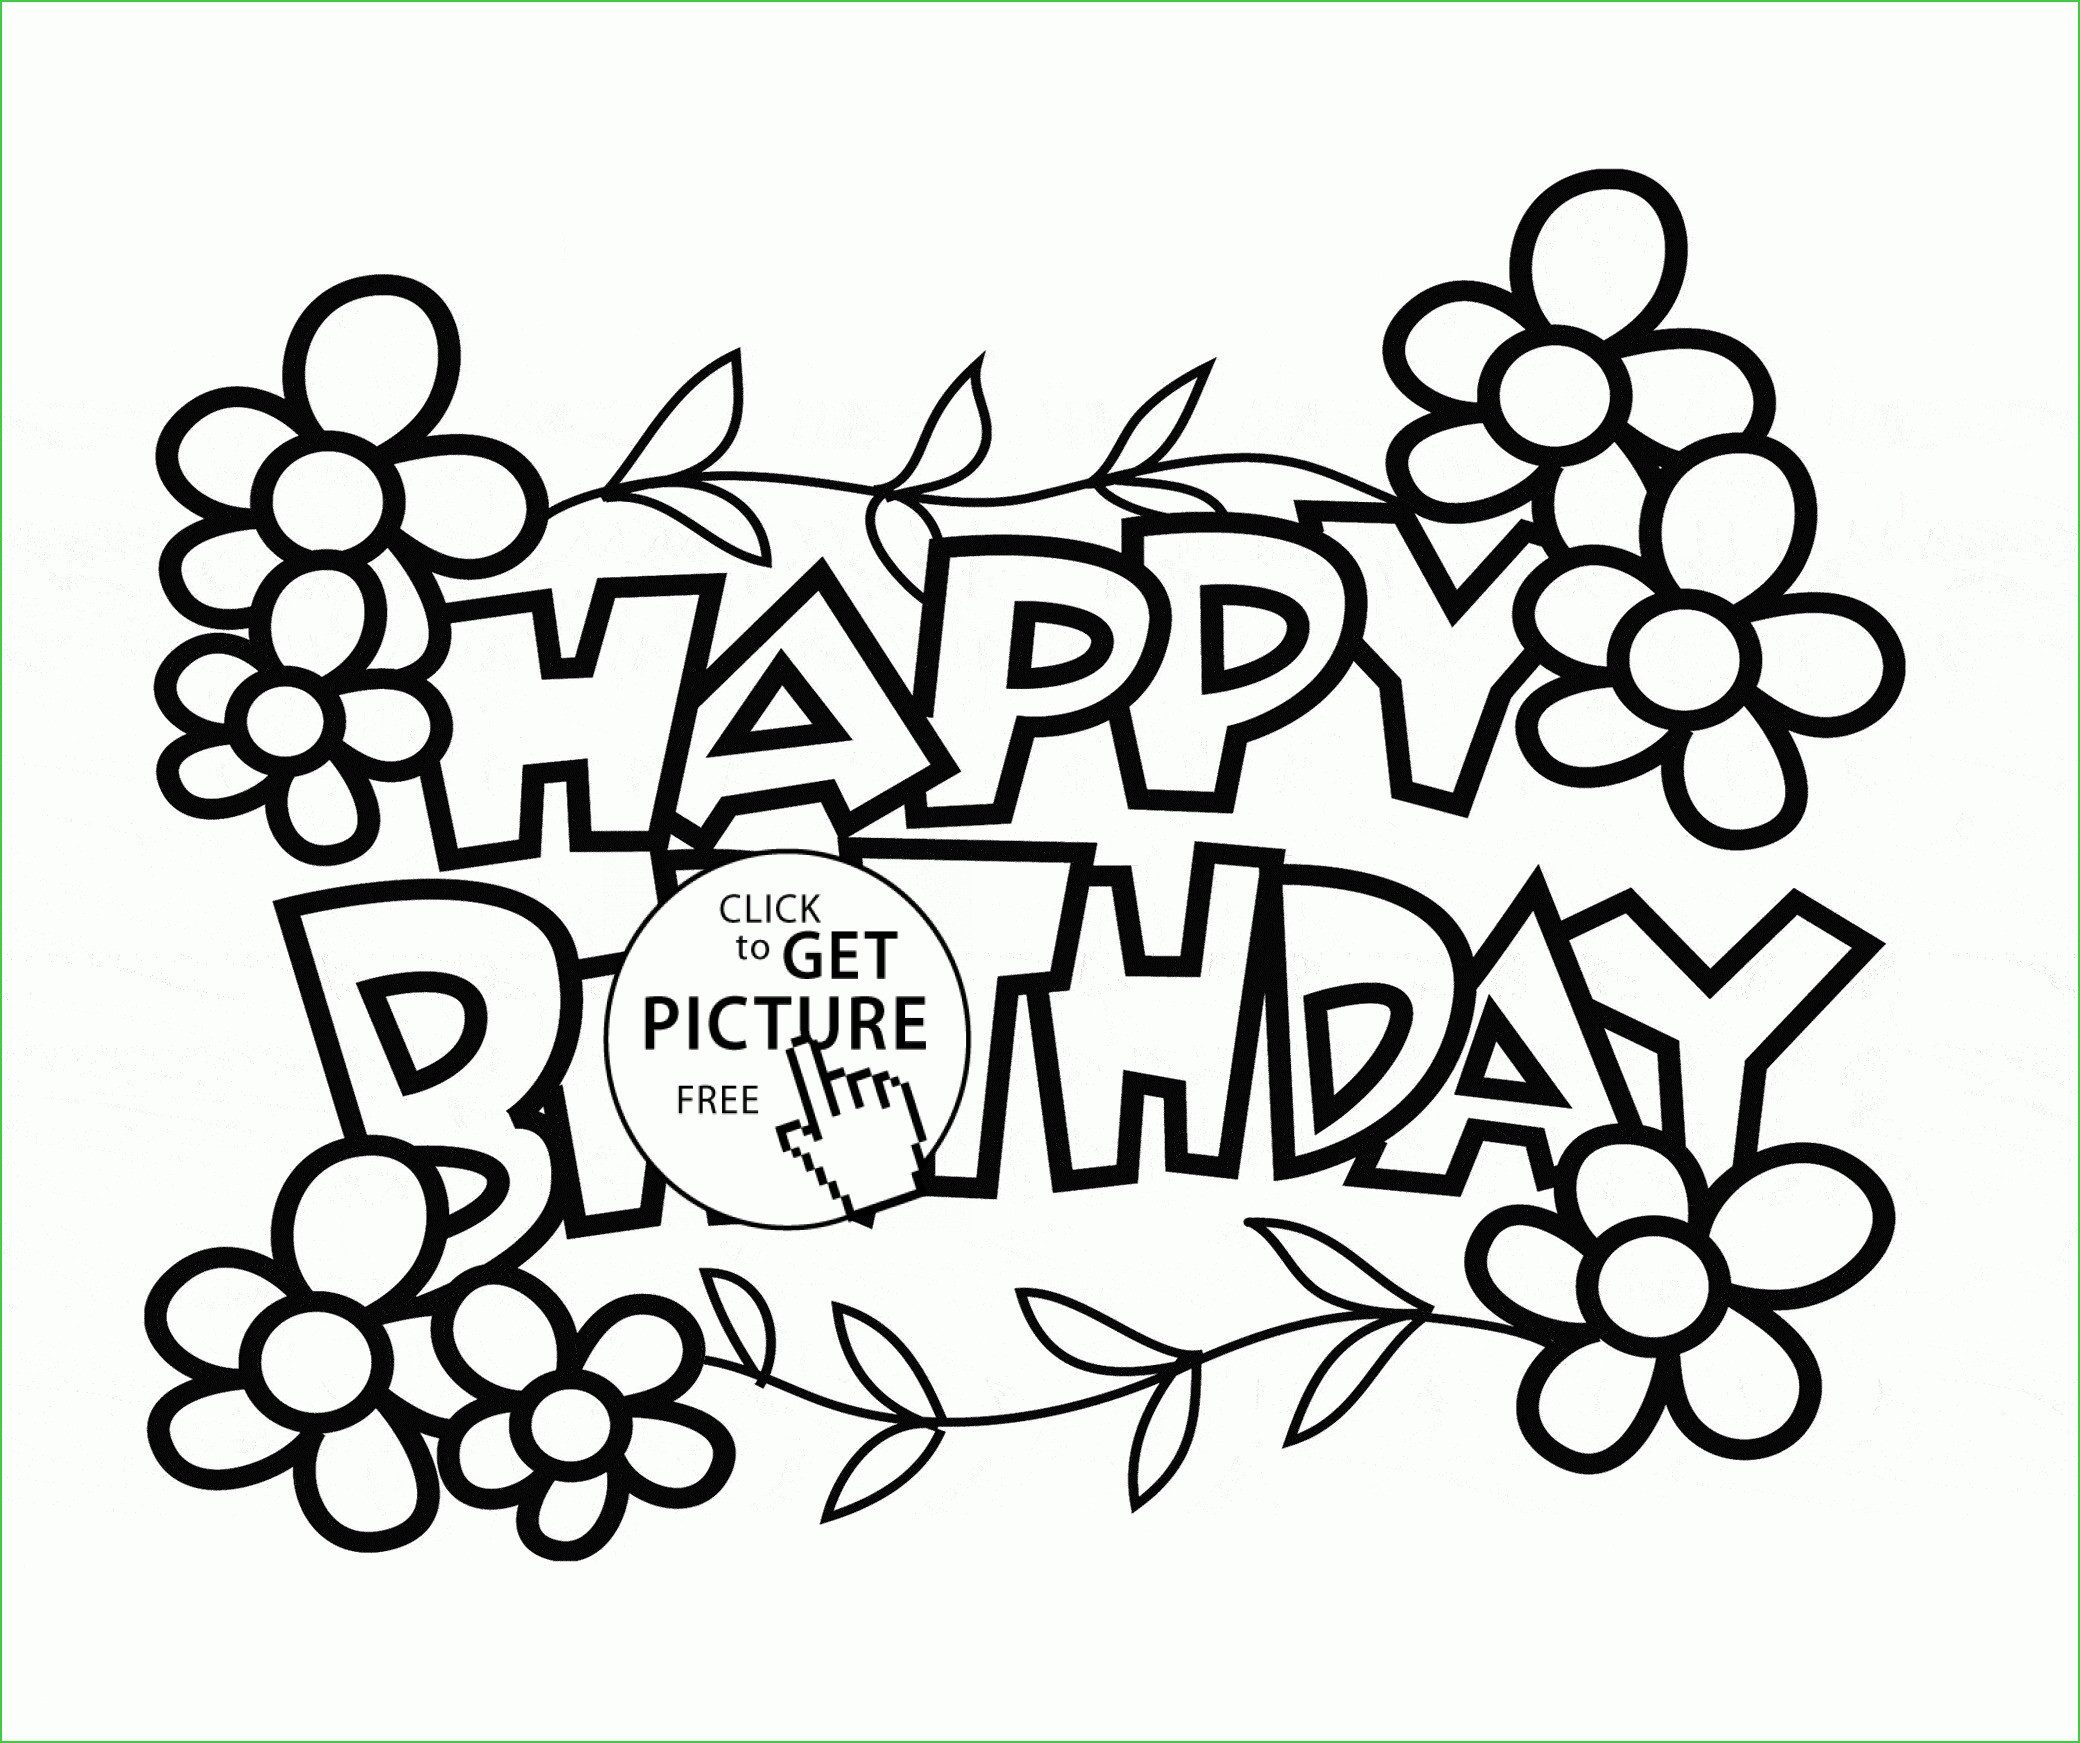 Happy Birthday Drawings For Card | Free download on ClipArtMag